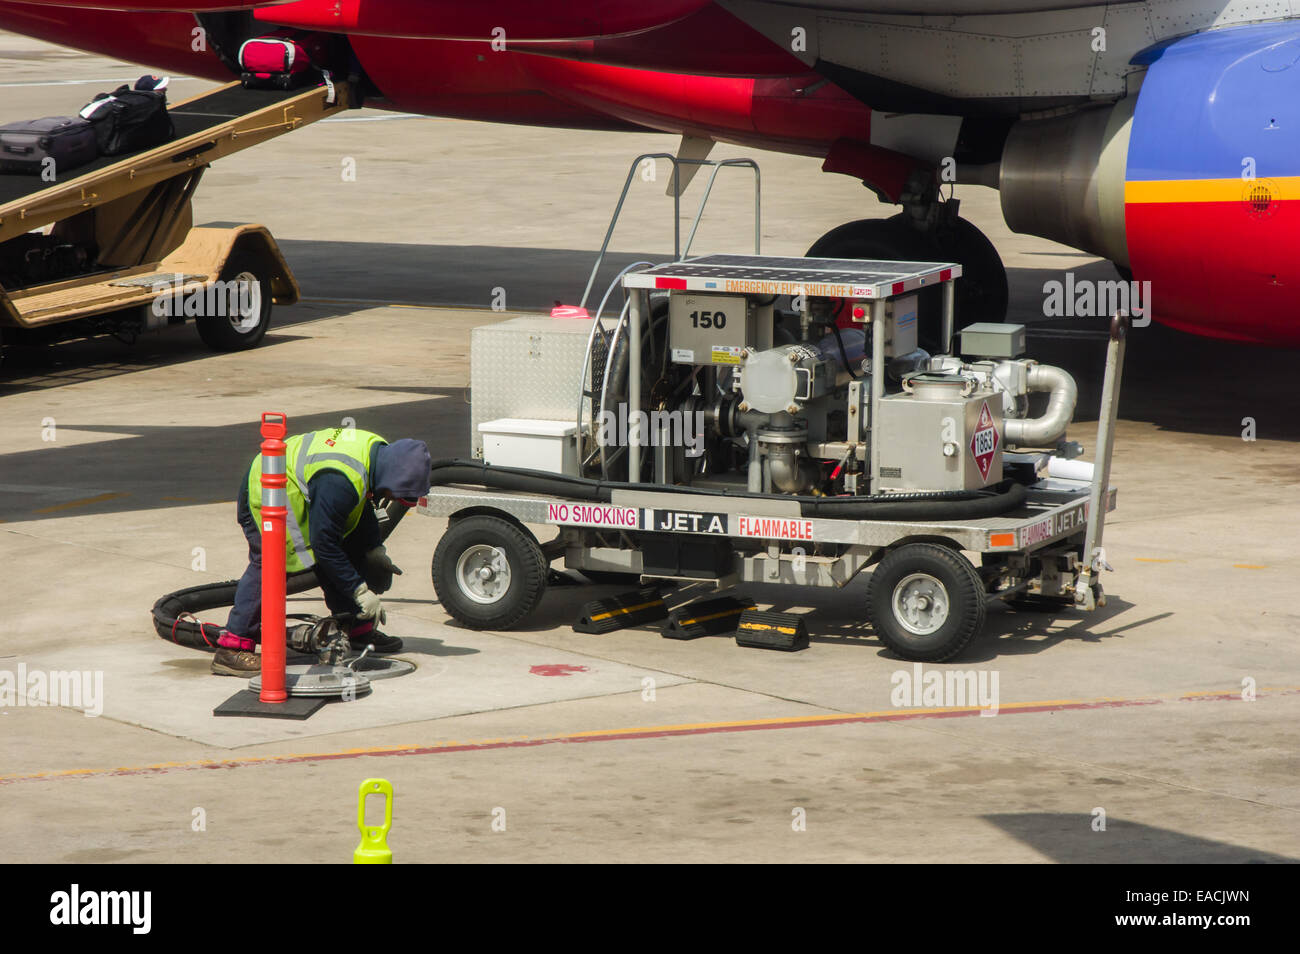 Ground crew using a mobile fuel pump to fill the tanks of a Southwest Airlines plane. - Stock Image